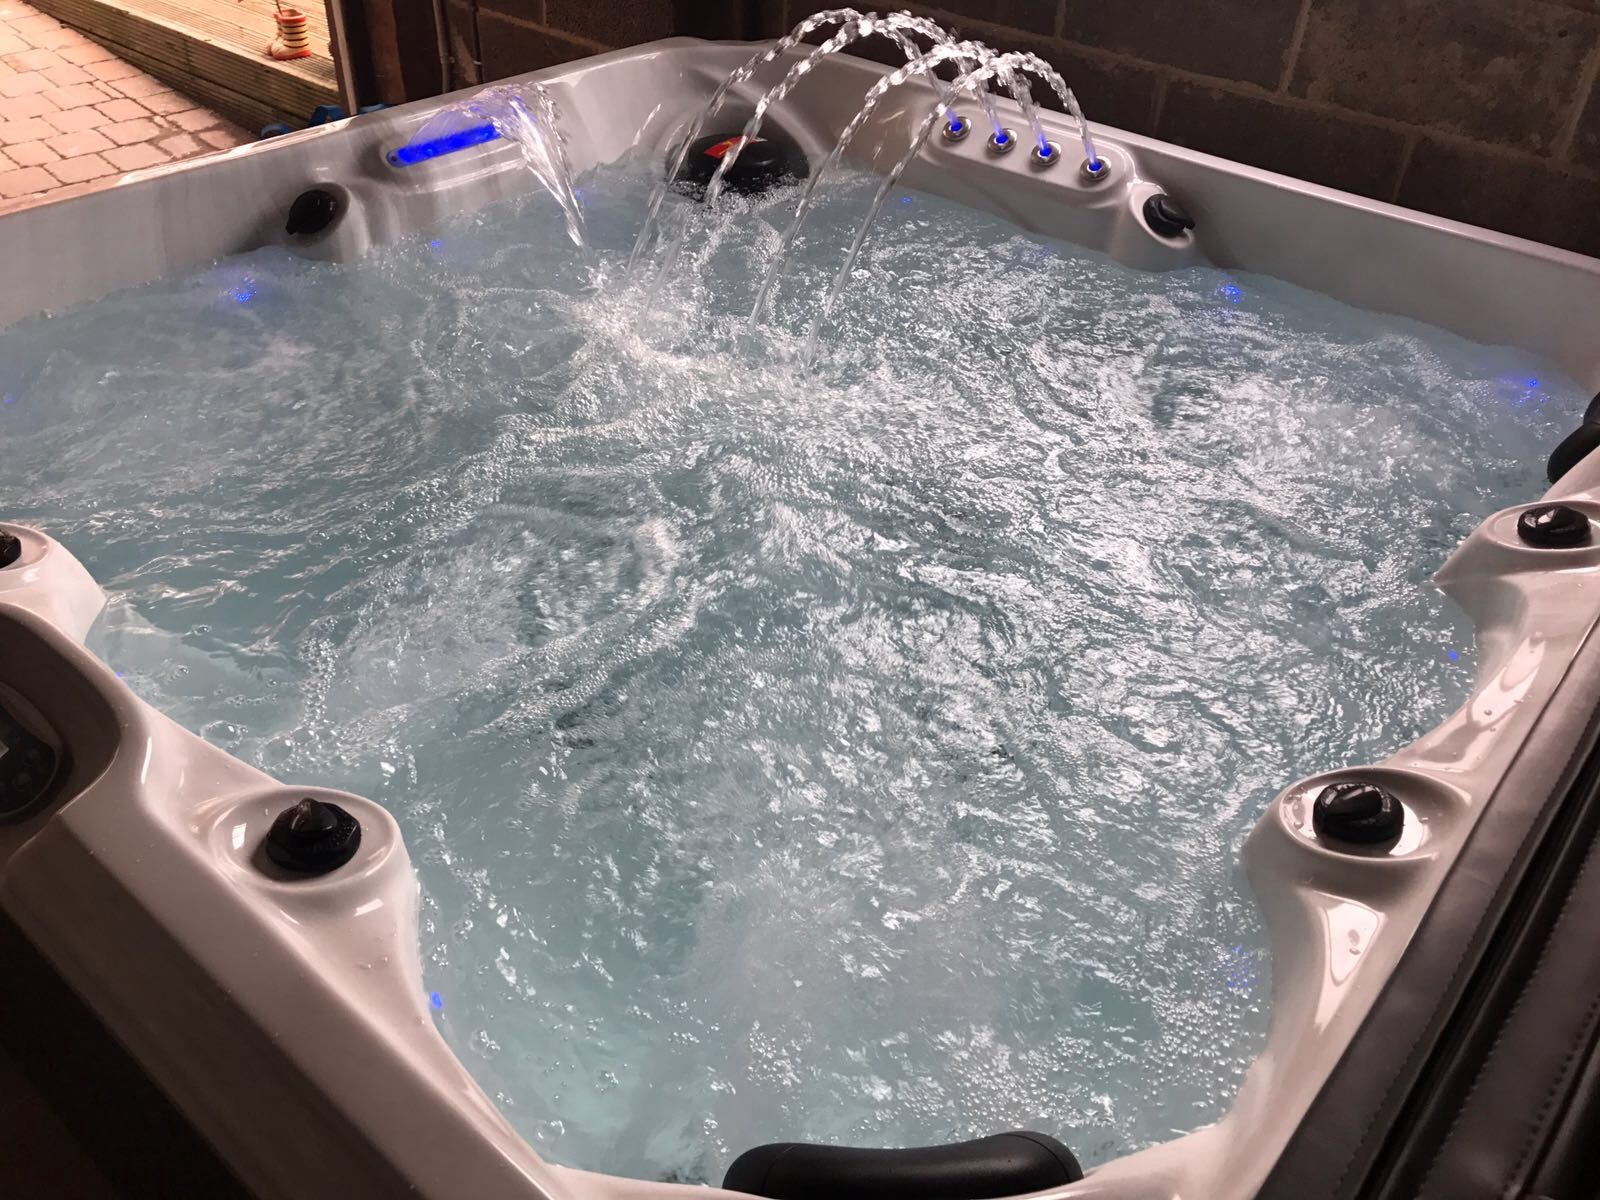 Brand New Hunter Ii Hot Tub Spa With Bluetooth Speakers Usa Balboa Regulations For Wiring Up A 2018 Design Control